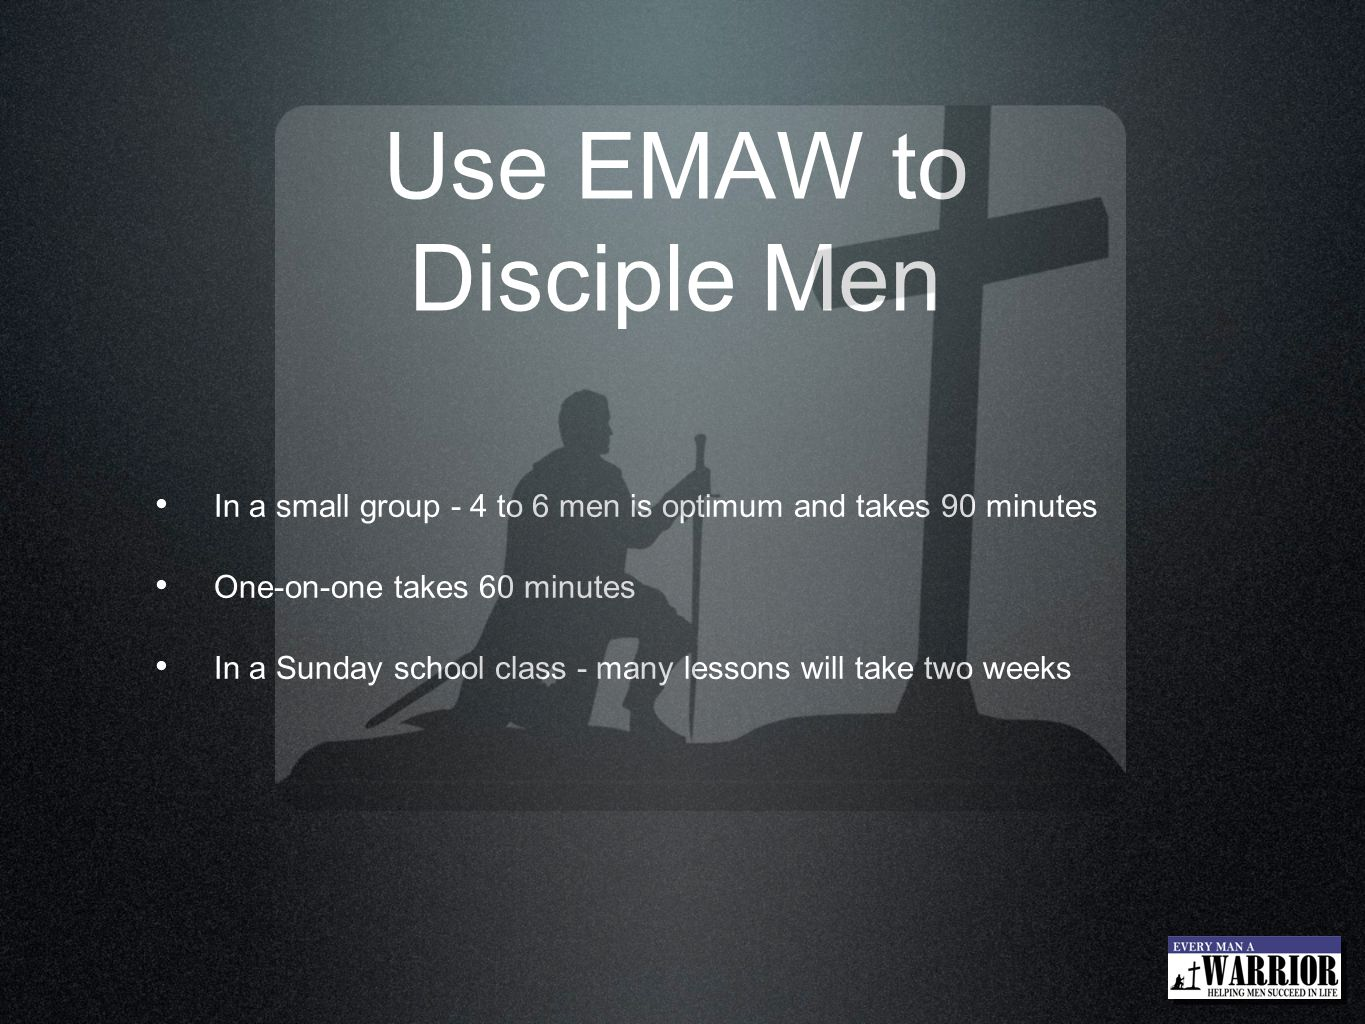 Use EMAW to Disciple Men